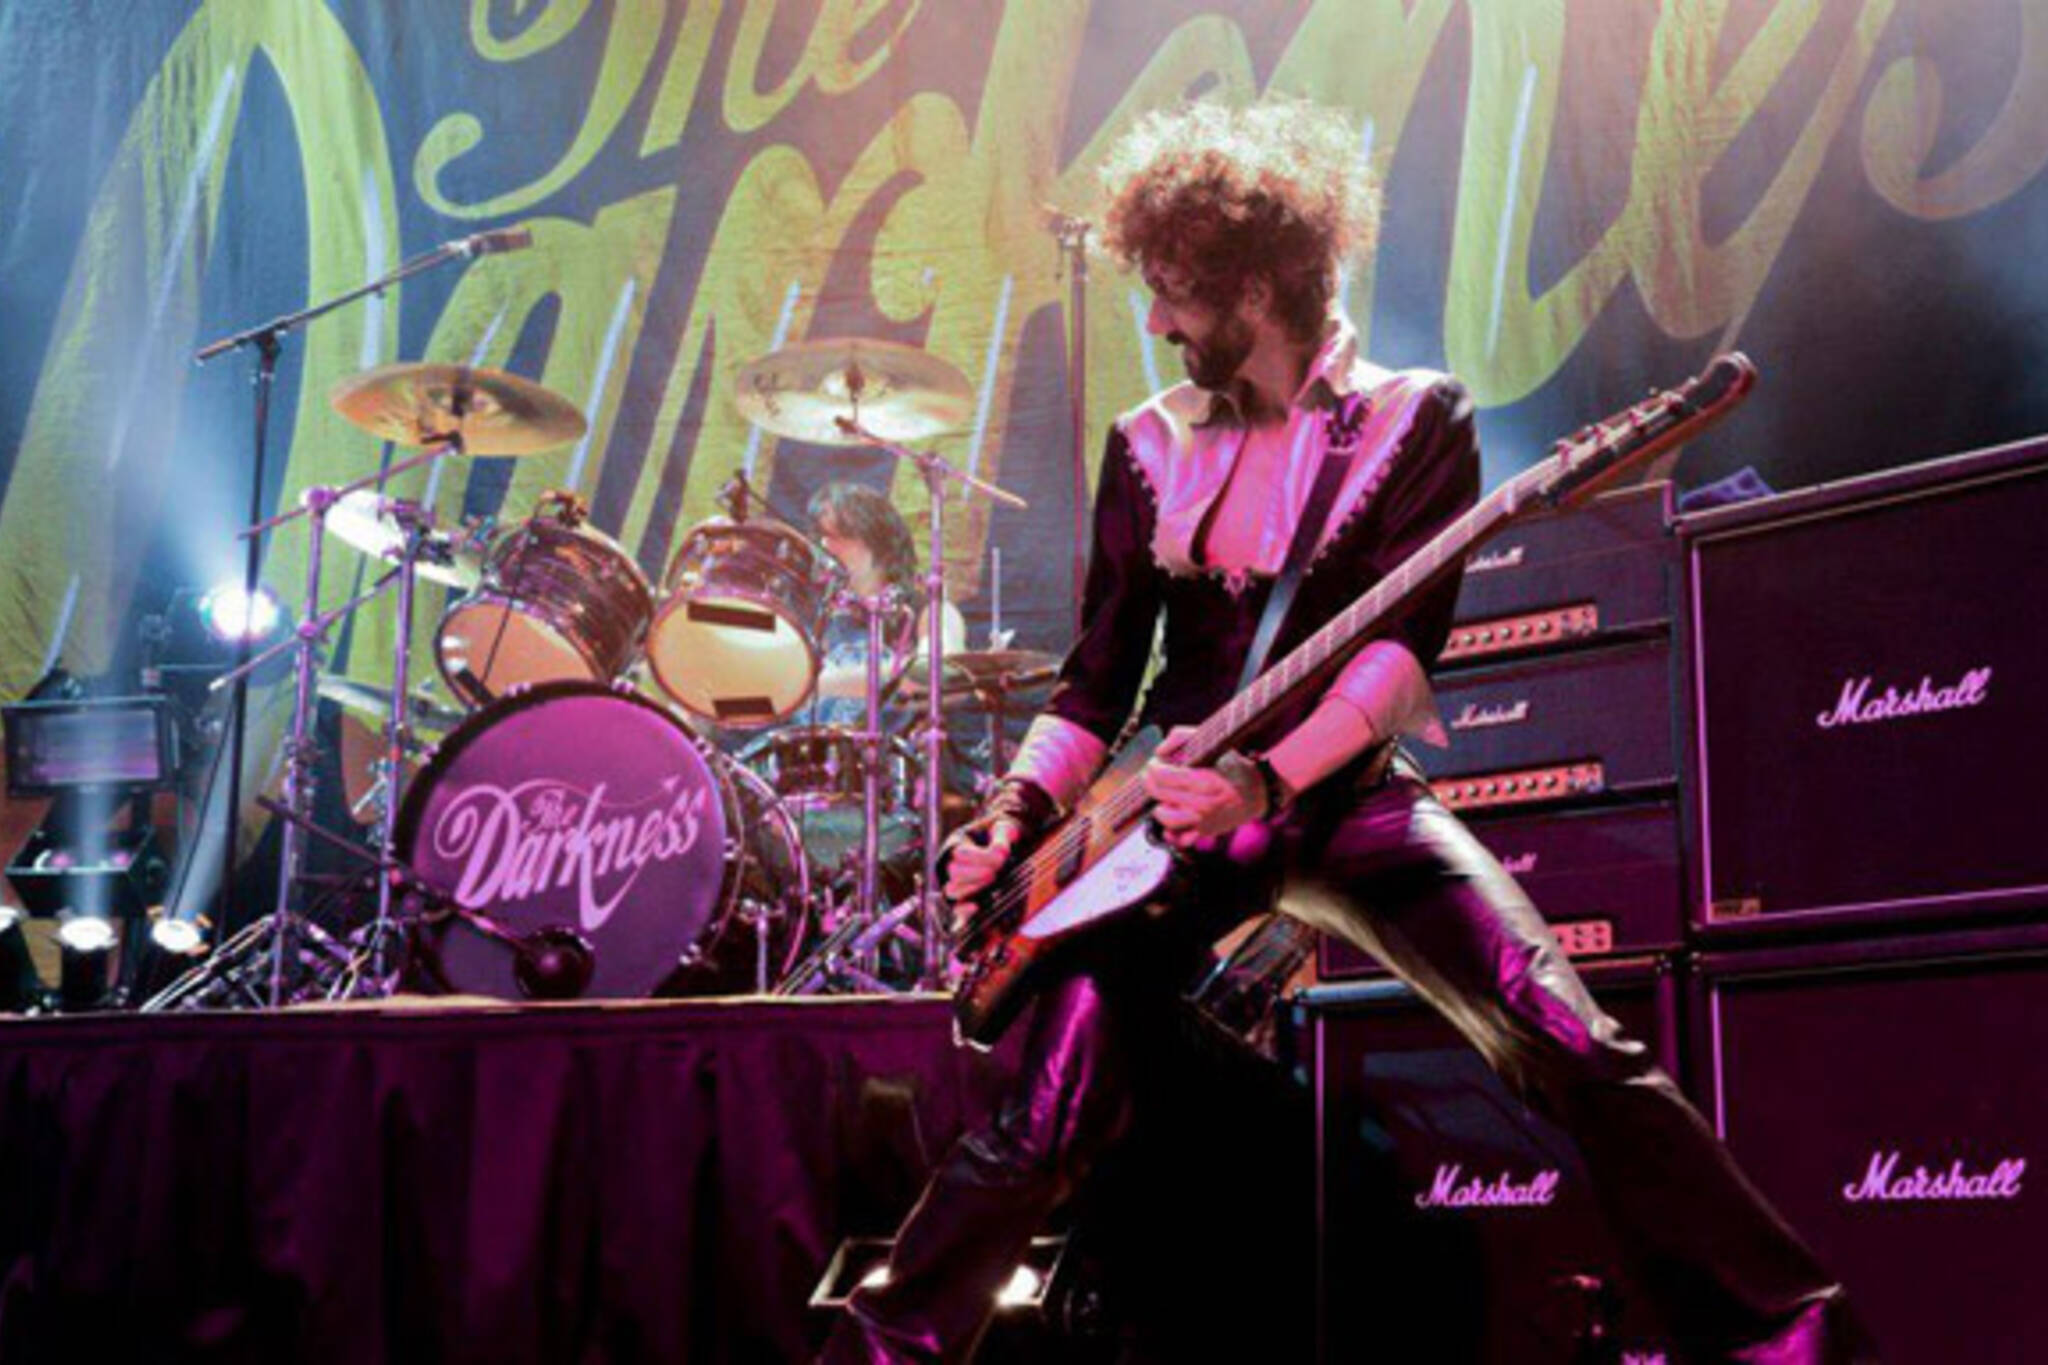 The Darkness band